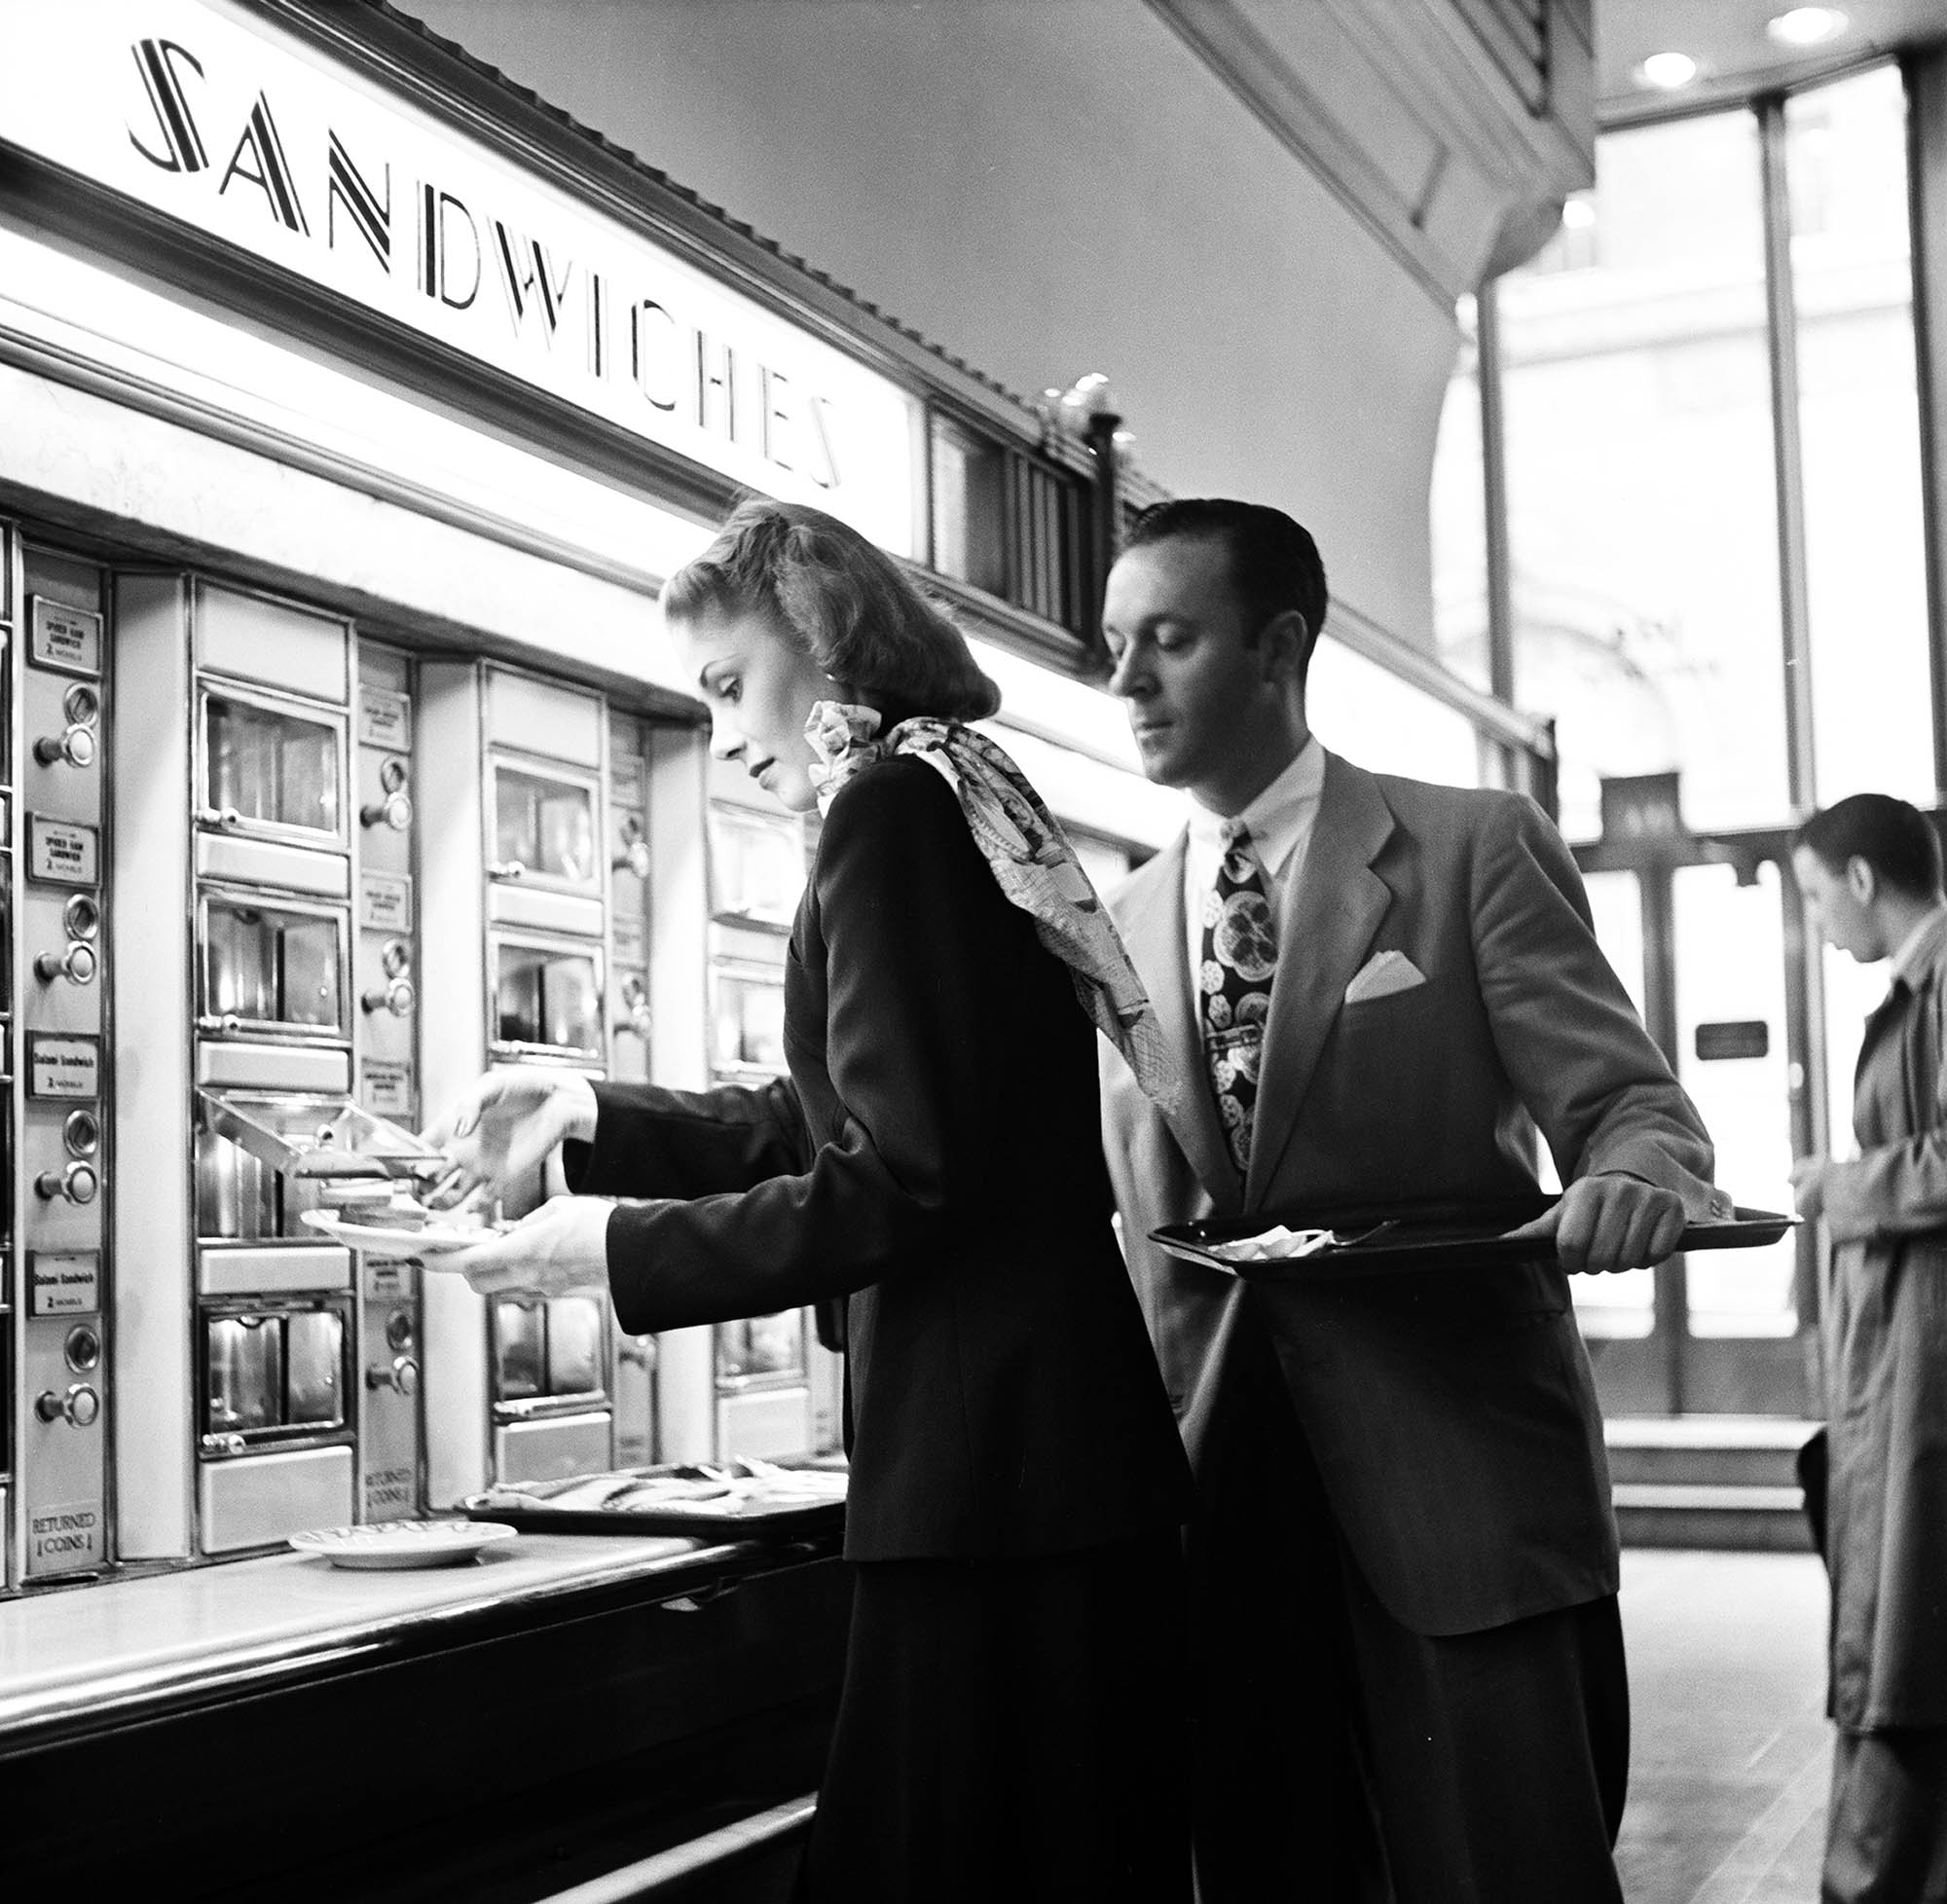 At The Grand Central Station Automat